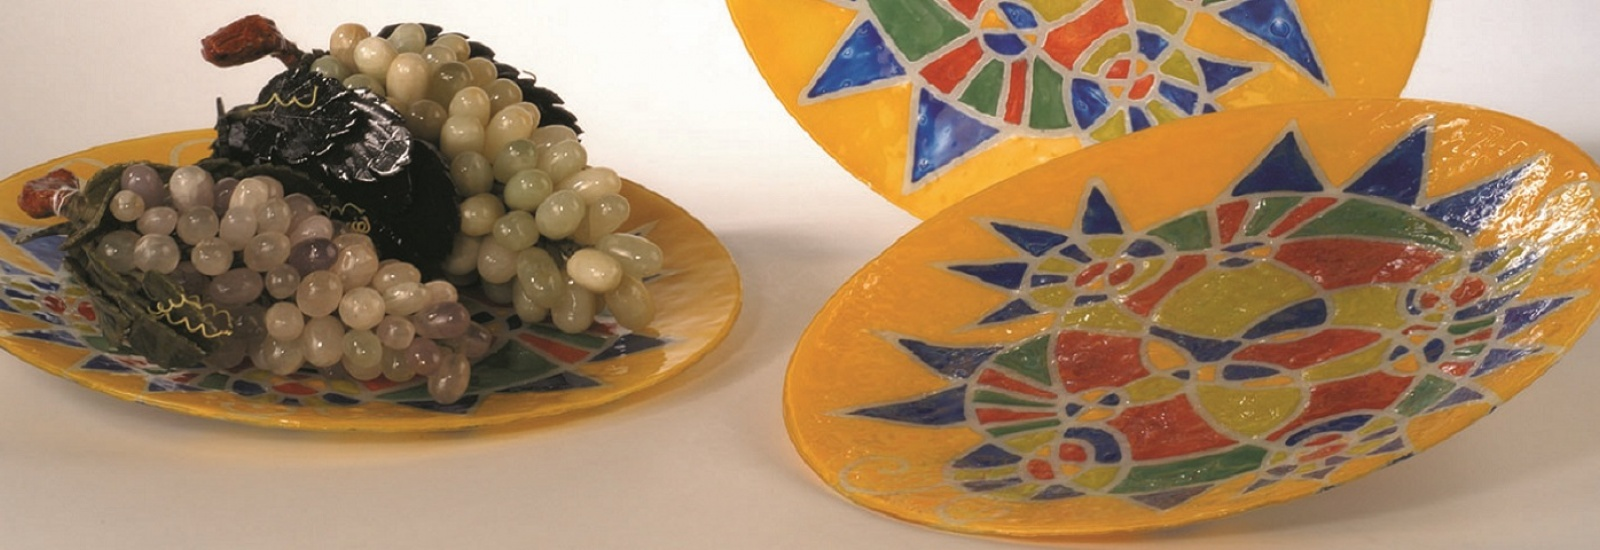 Painted glass dishes